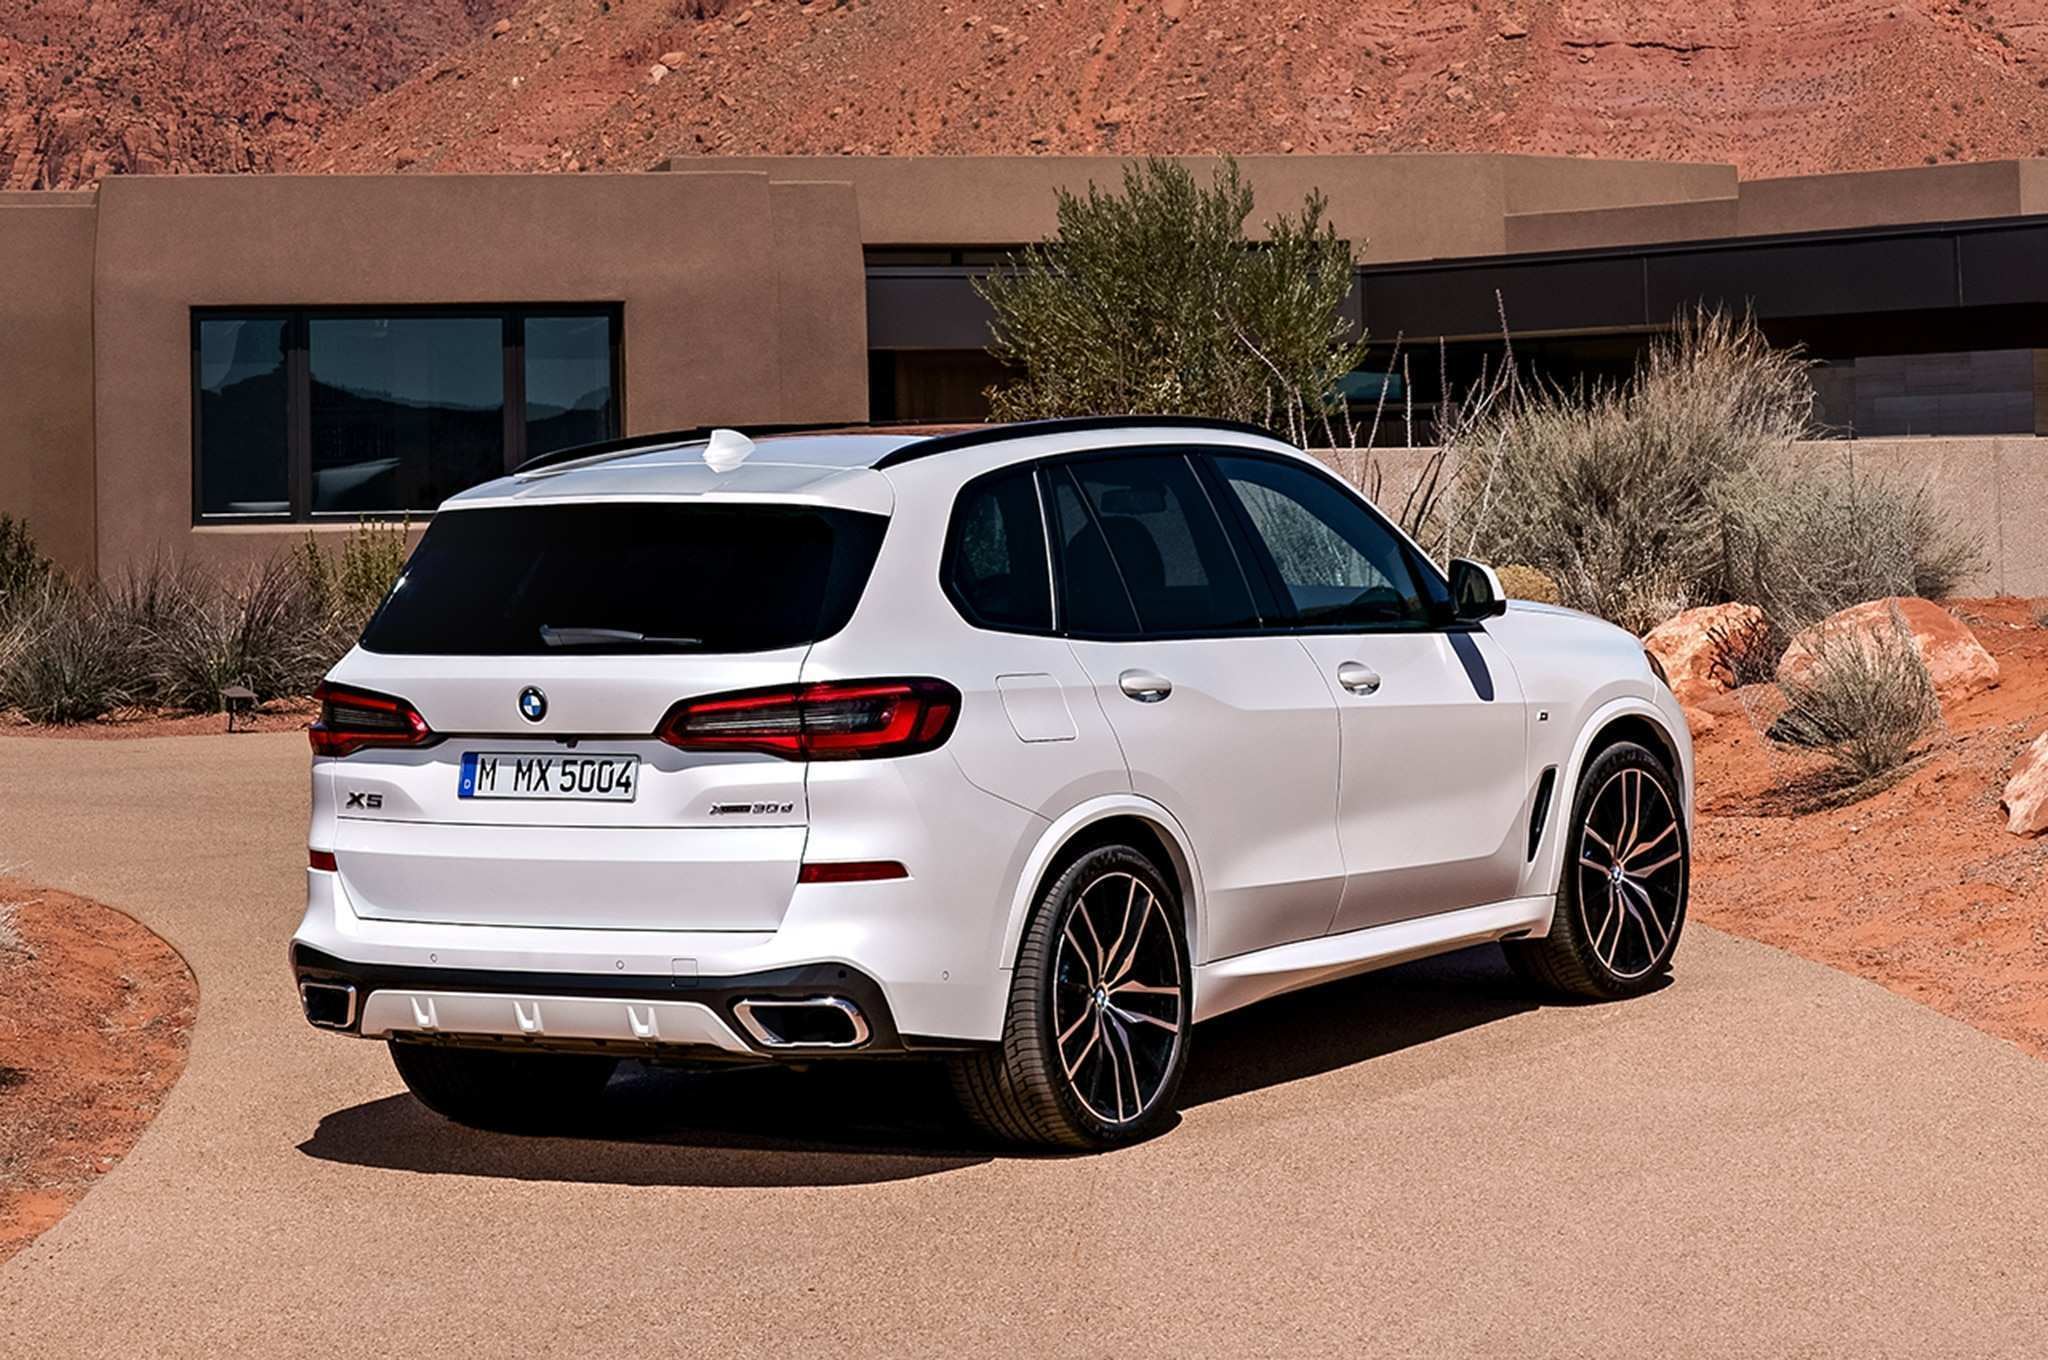 52 New 2019 Bmw X5 Diesel Review with 2019 Bmw X5 Diesel